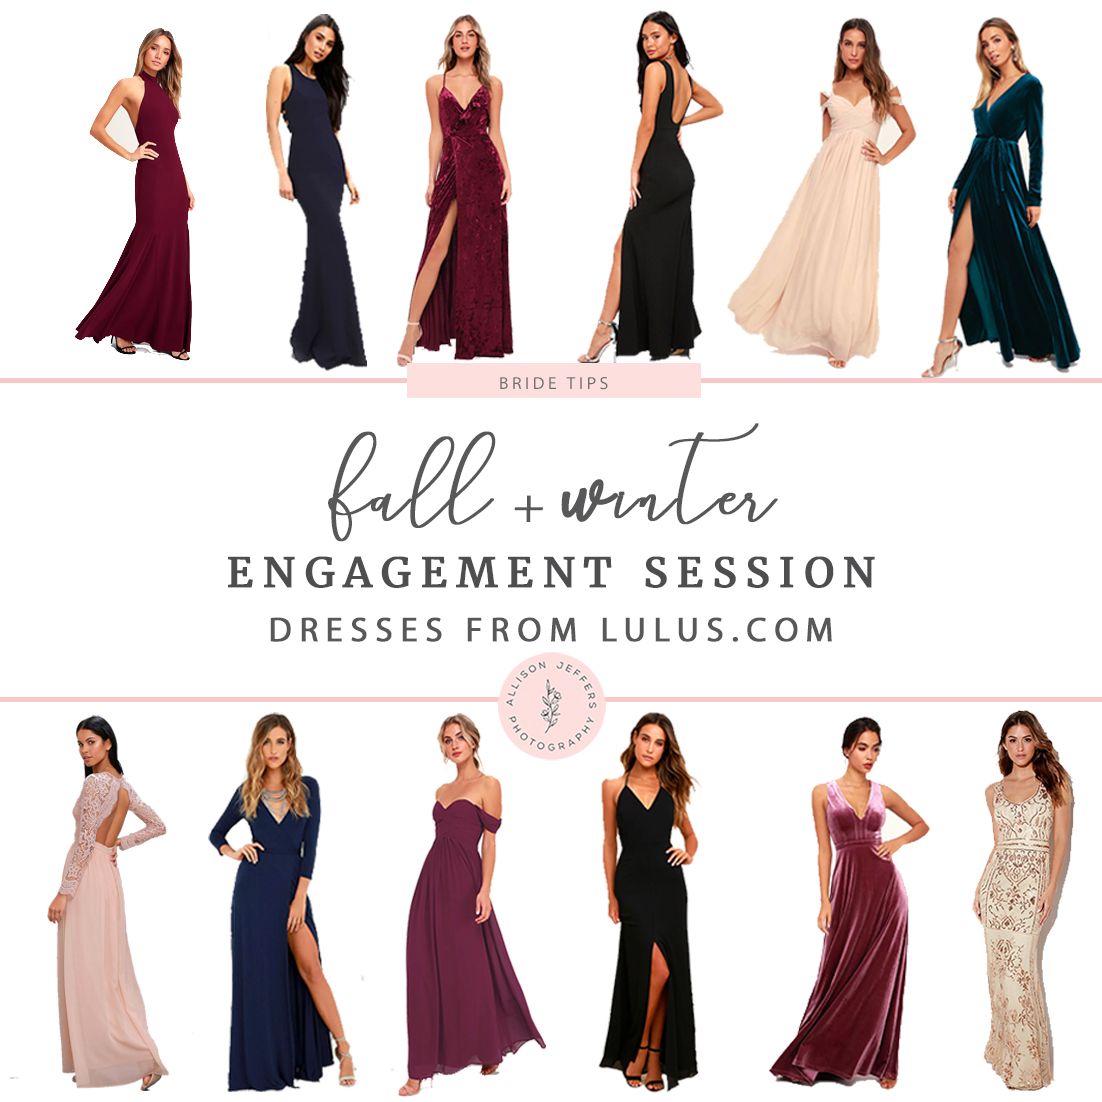 LULU'S: Shop Lulus for must-have dresses, tops, shoes and accessories. Curated collections, exclusive styles and new items added daily.